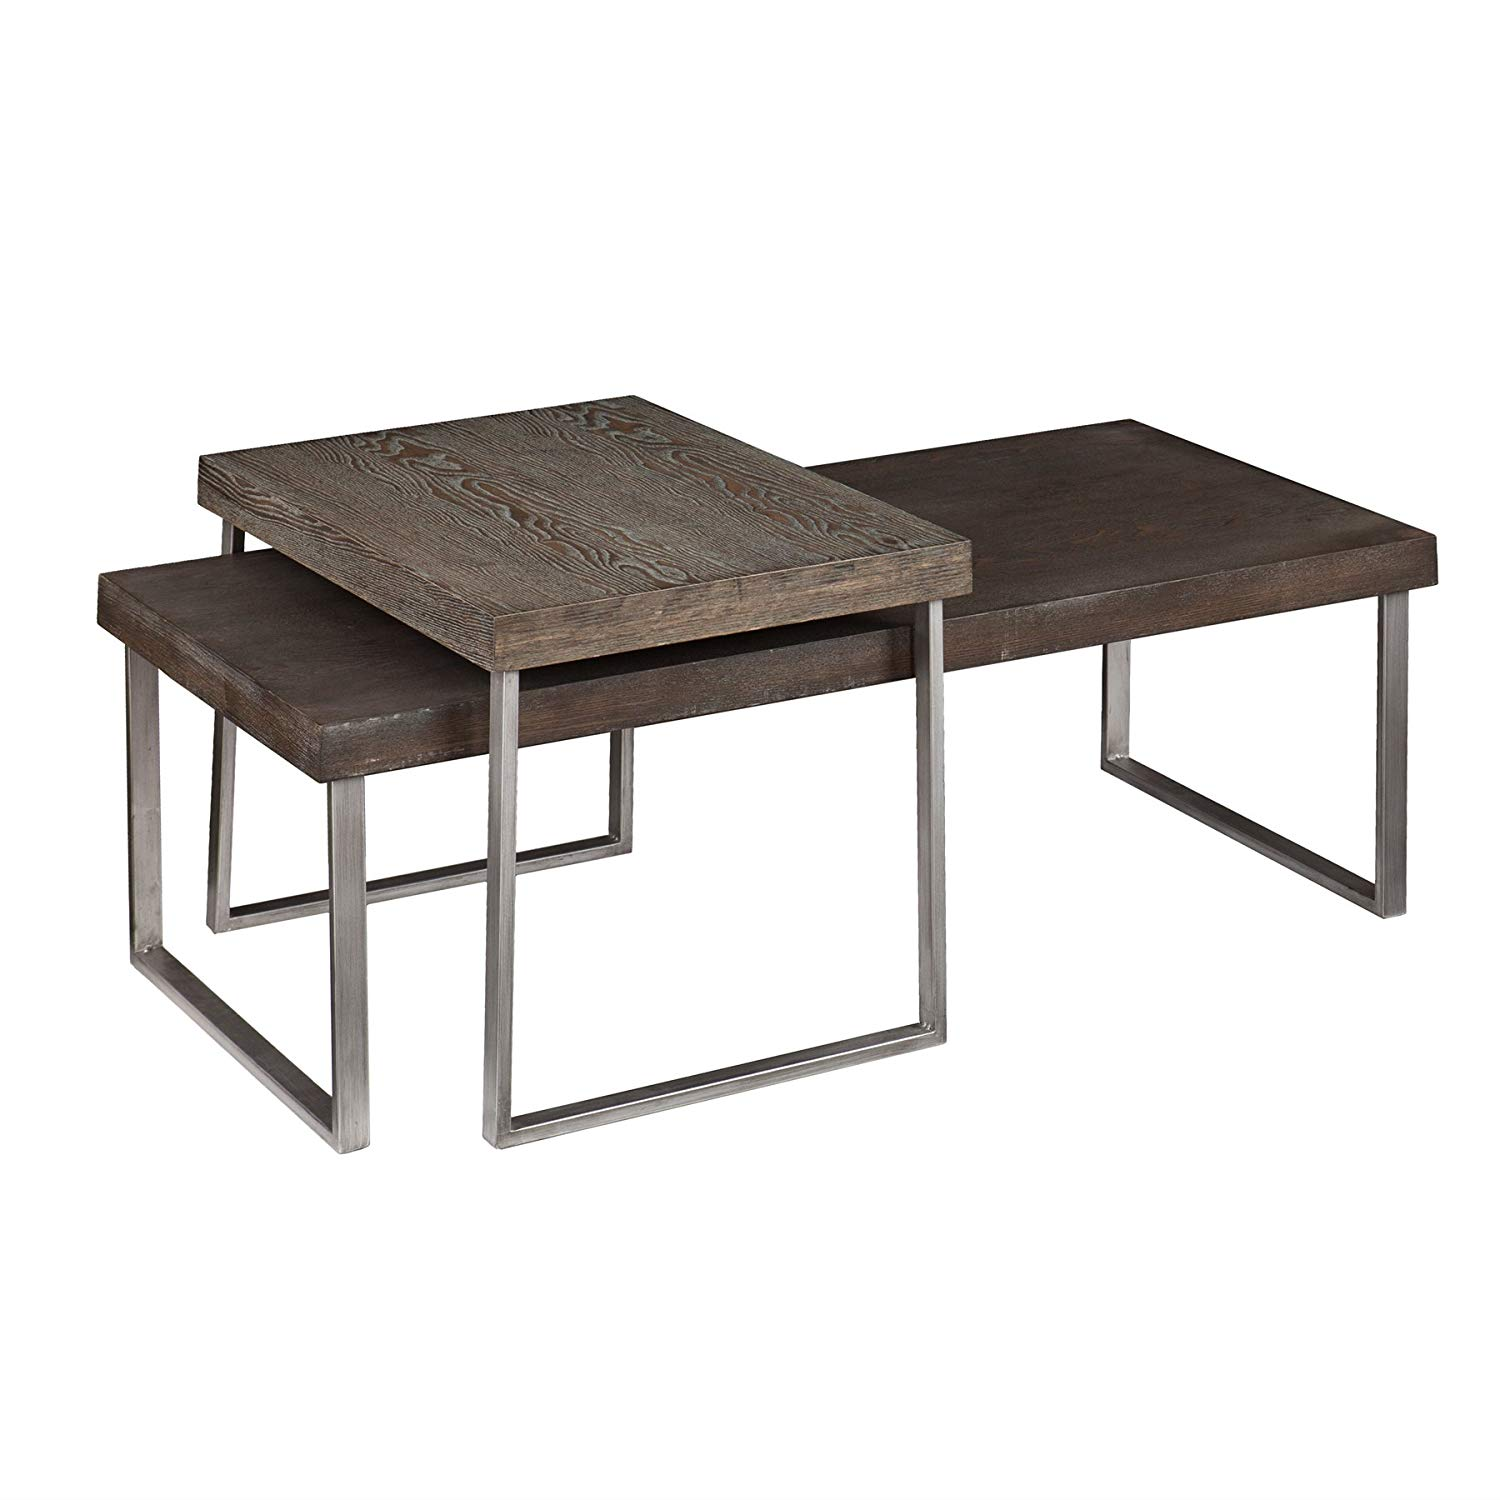 southern enterprises nolan nested cocktail table pedestal accent set kitchen dining pier one coffee seater cover painted ideas solid oak furniture maple bedside wipeable